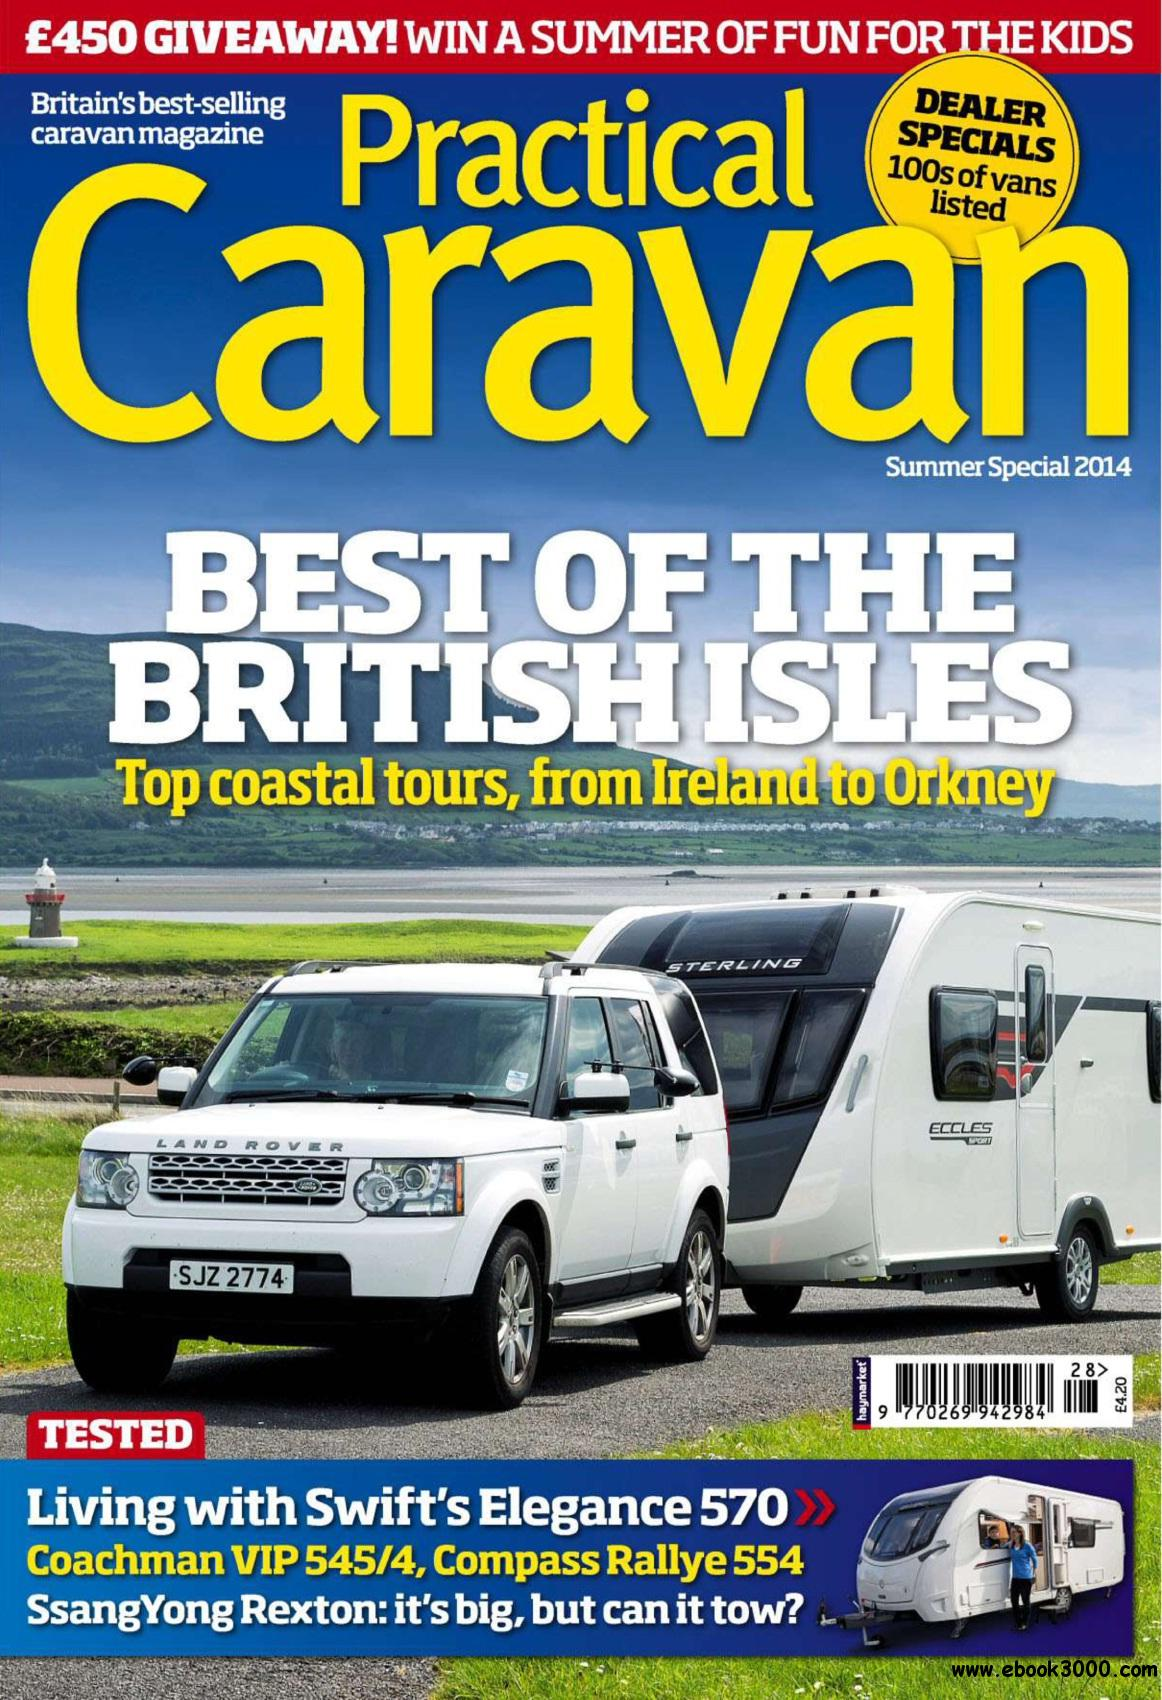 Practical Caravan - Summer 2014 free download